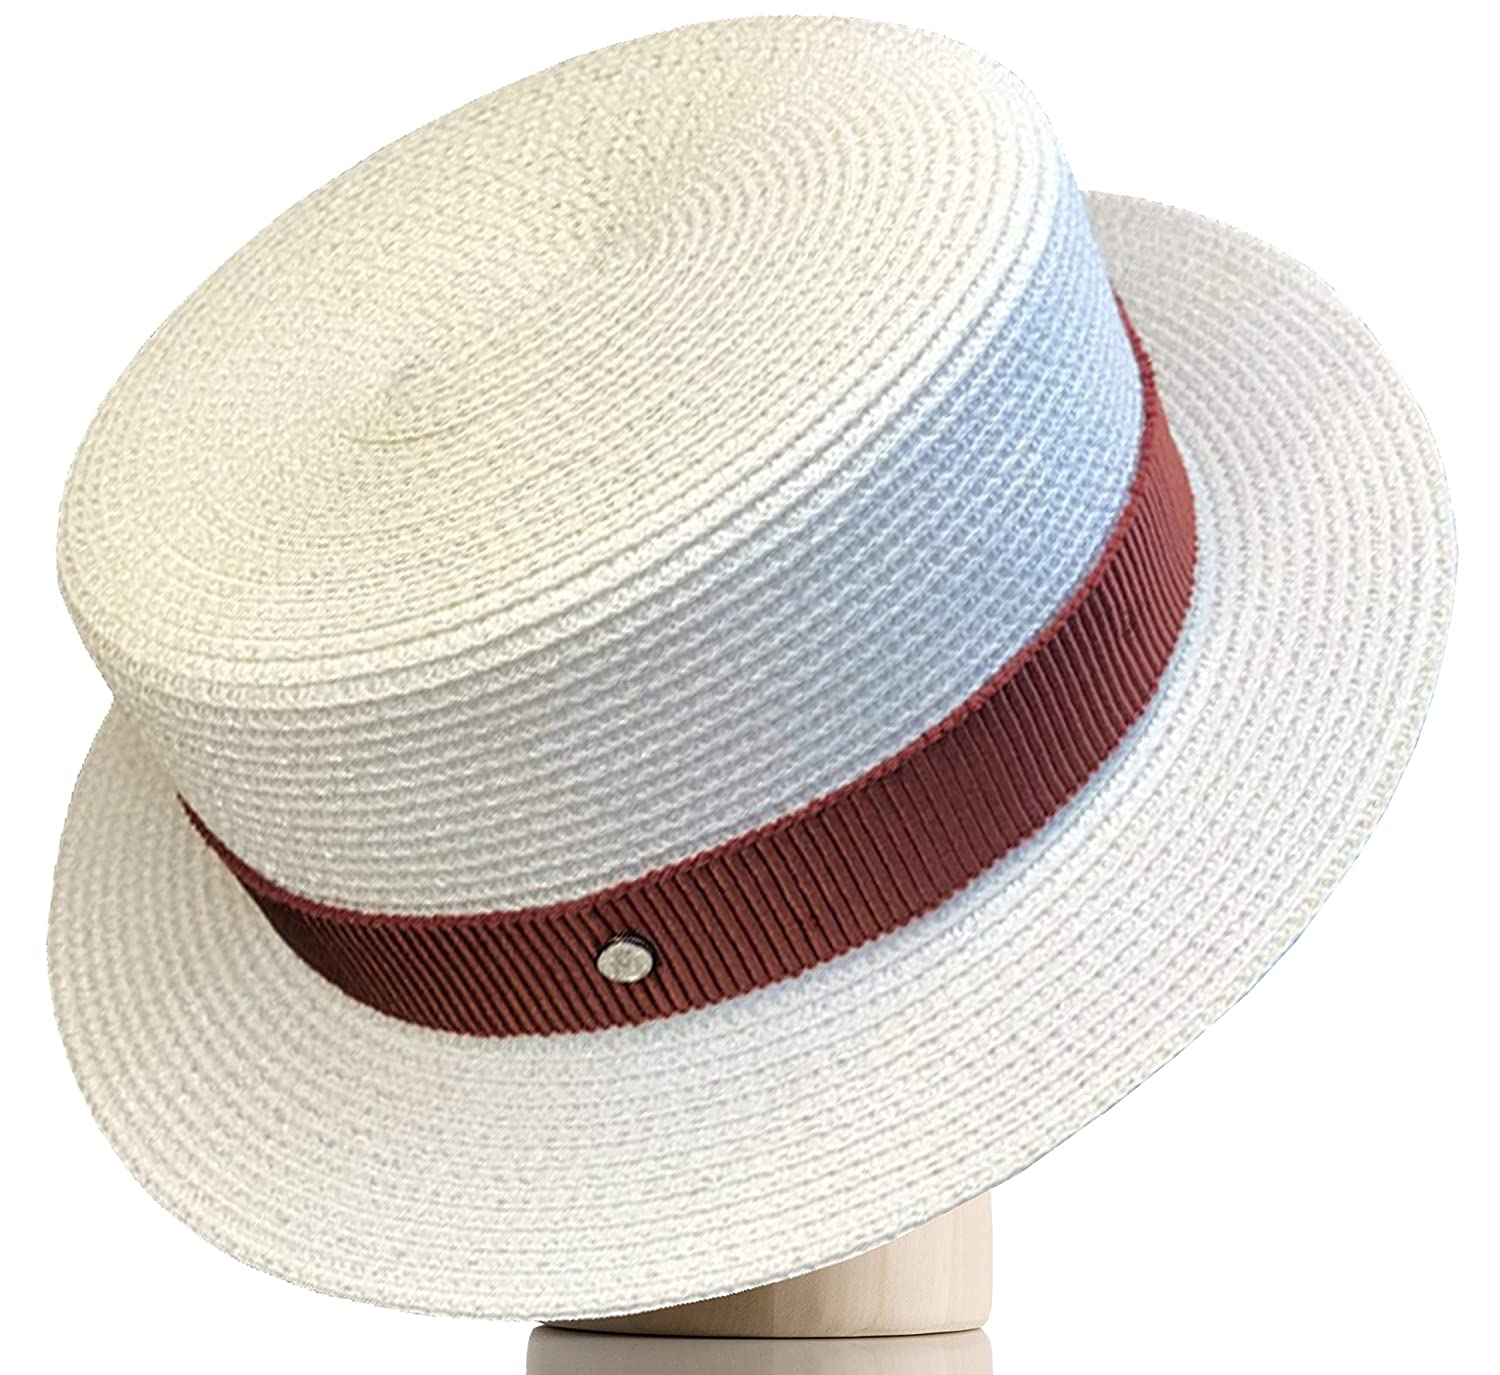 Tea Party Hats – Victorian to 1950s Melniko City Womens Straw Boater Hat Roaring 20s Retro Sunhat $22.98 AT vintagedancer.com